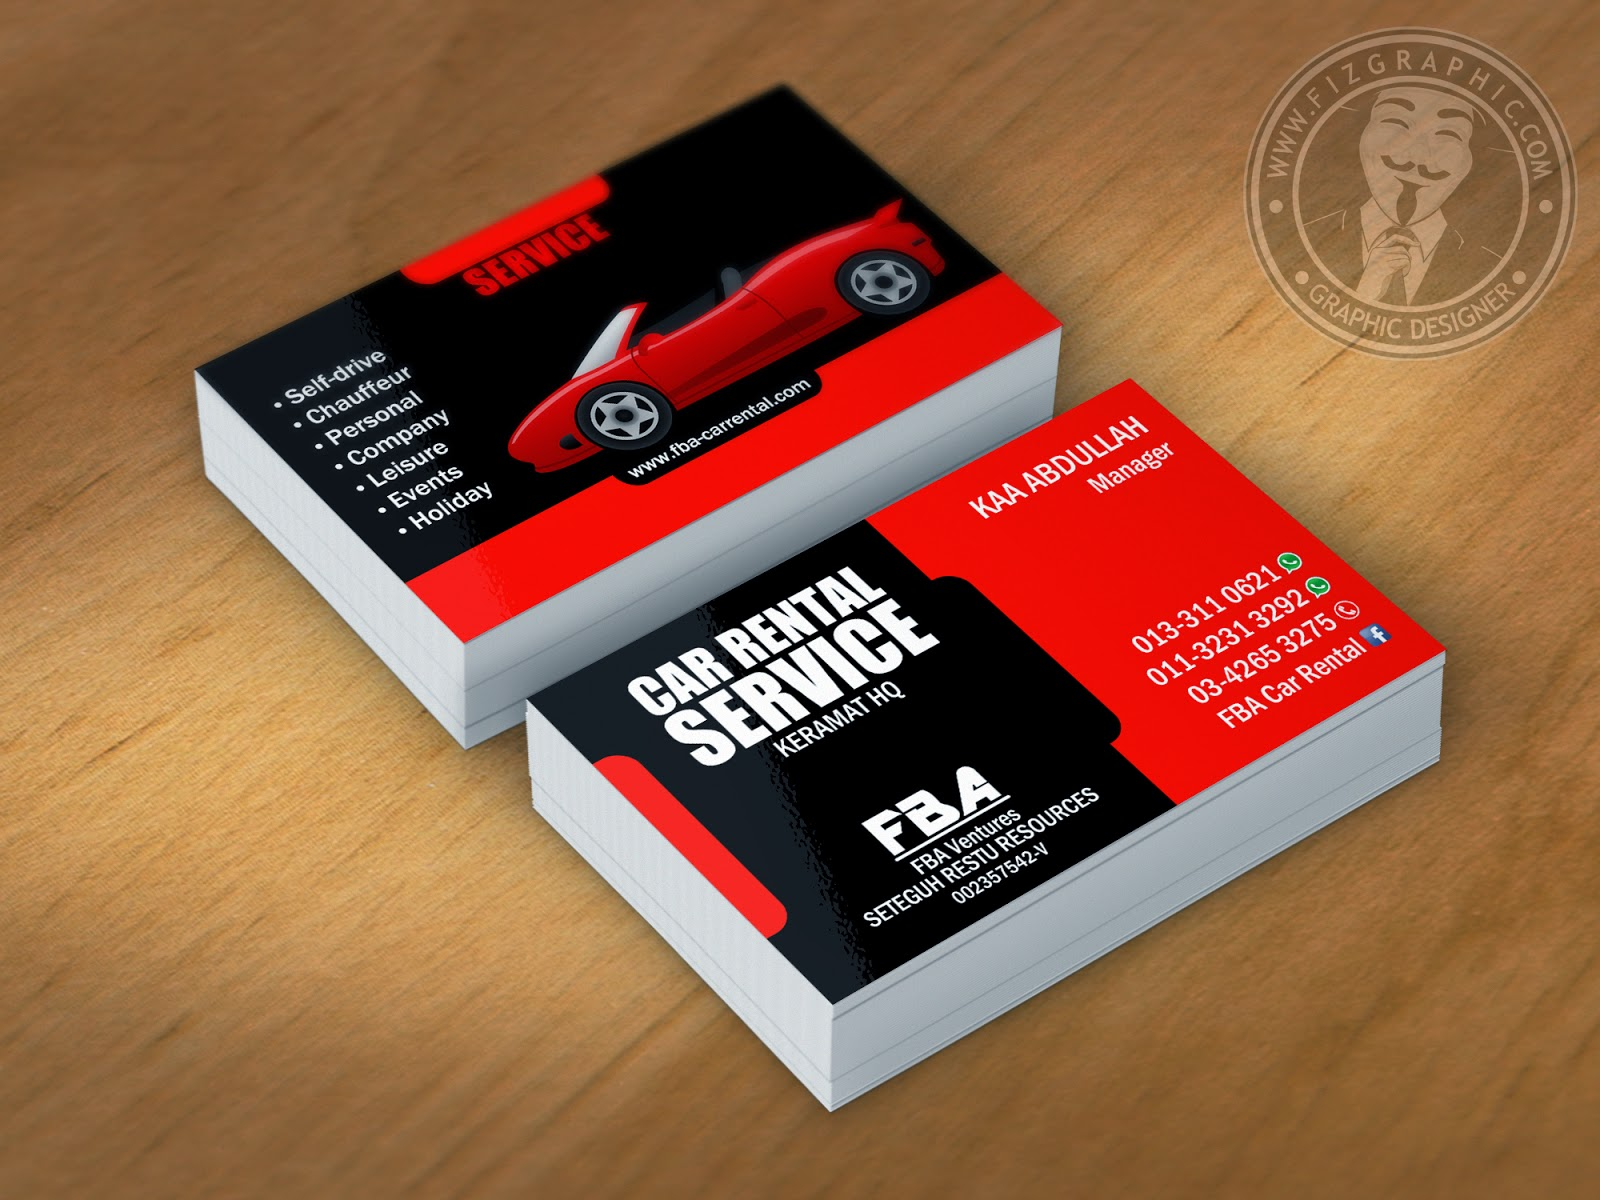 Car hire business cards image collections free business cards car hire business cards images free business cards car hire business cards choice image free business magicingreecefo Gallery